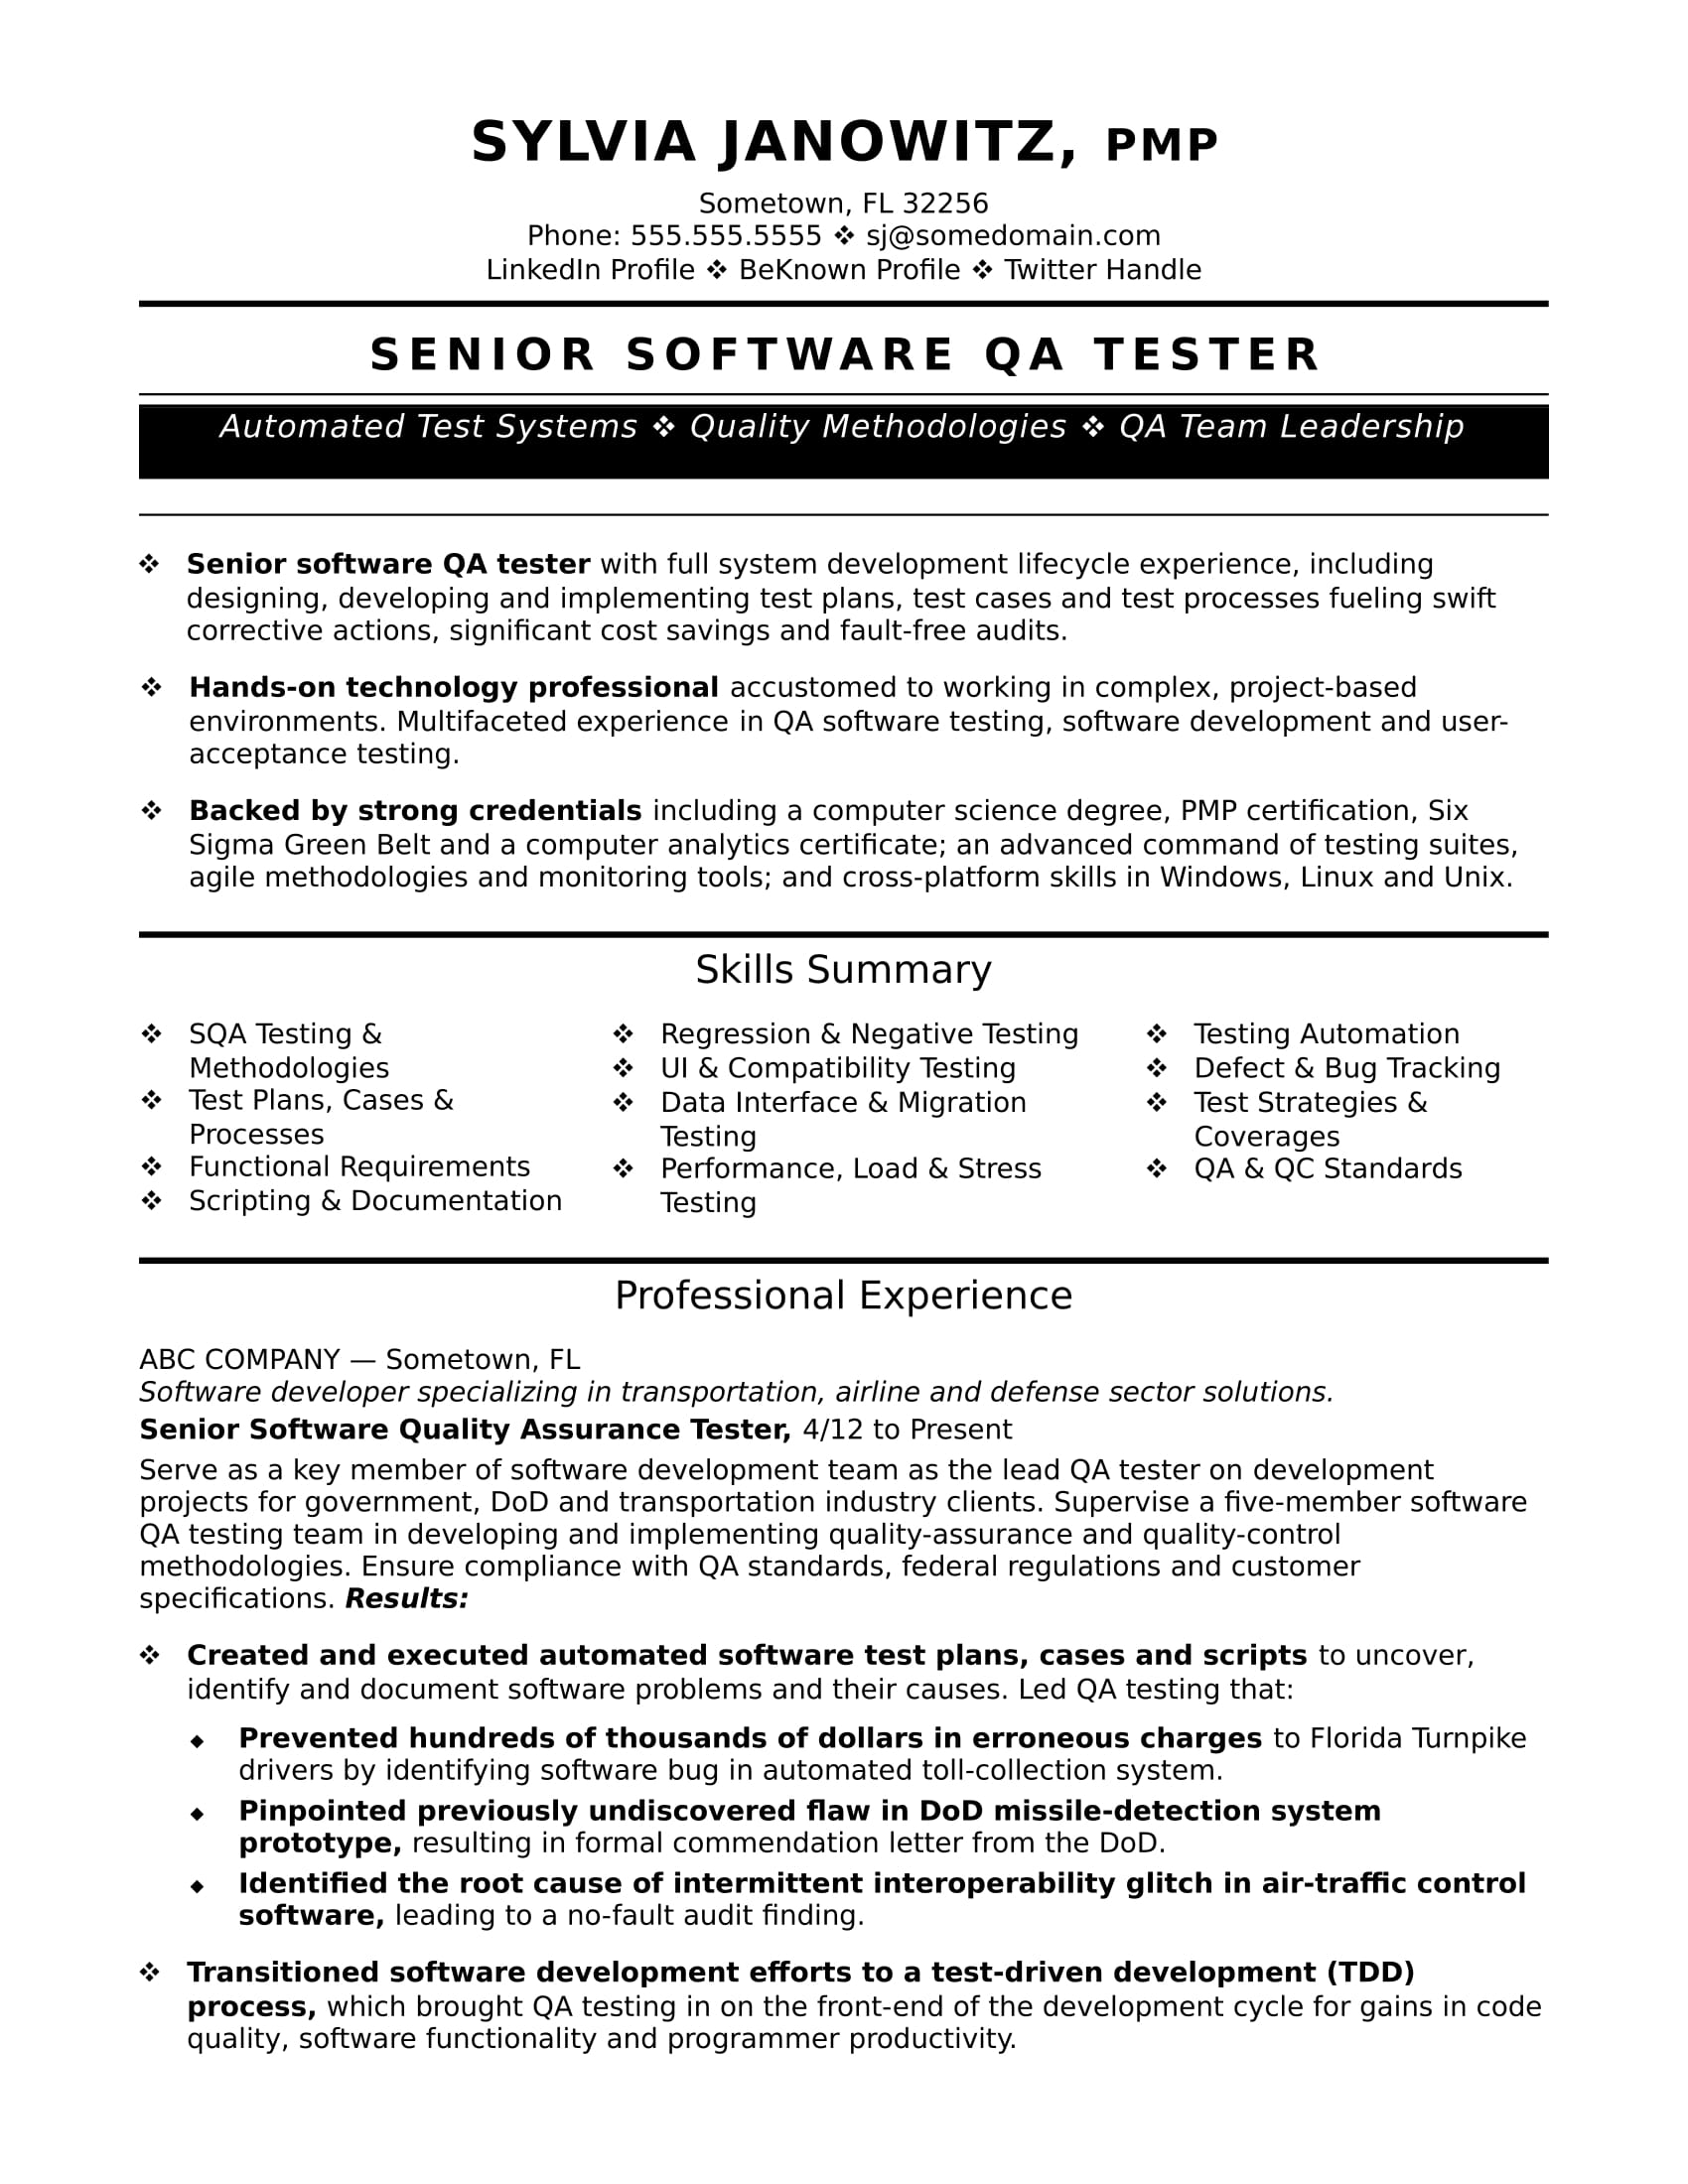 experienced qa software tester resume sample monster for test engineer career contessa Resume Sample Resume For Experienced Test Engineer